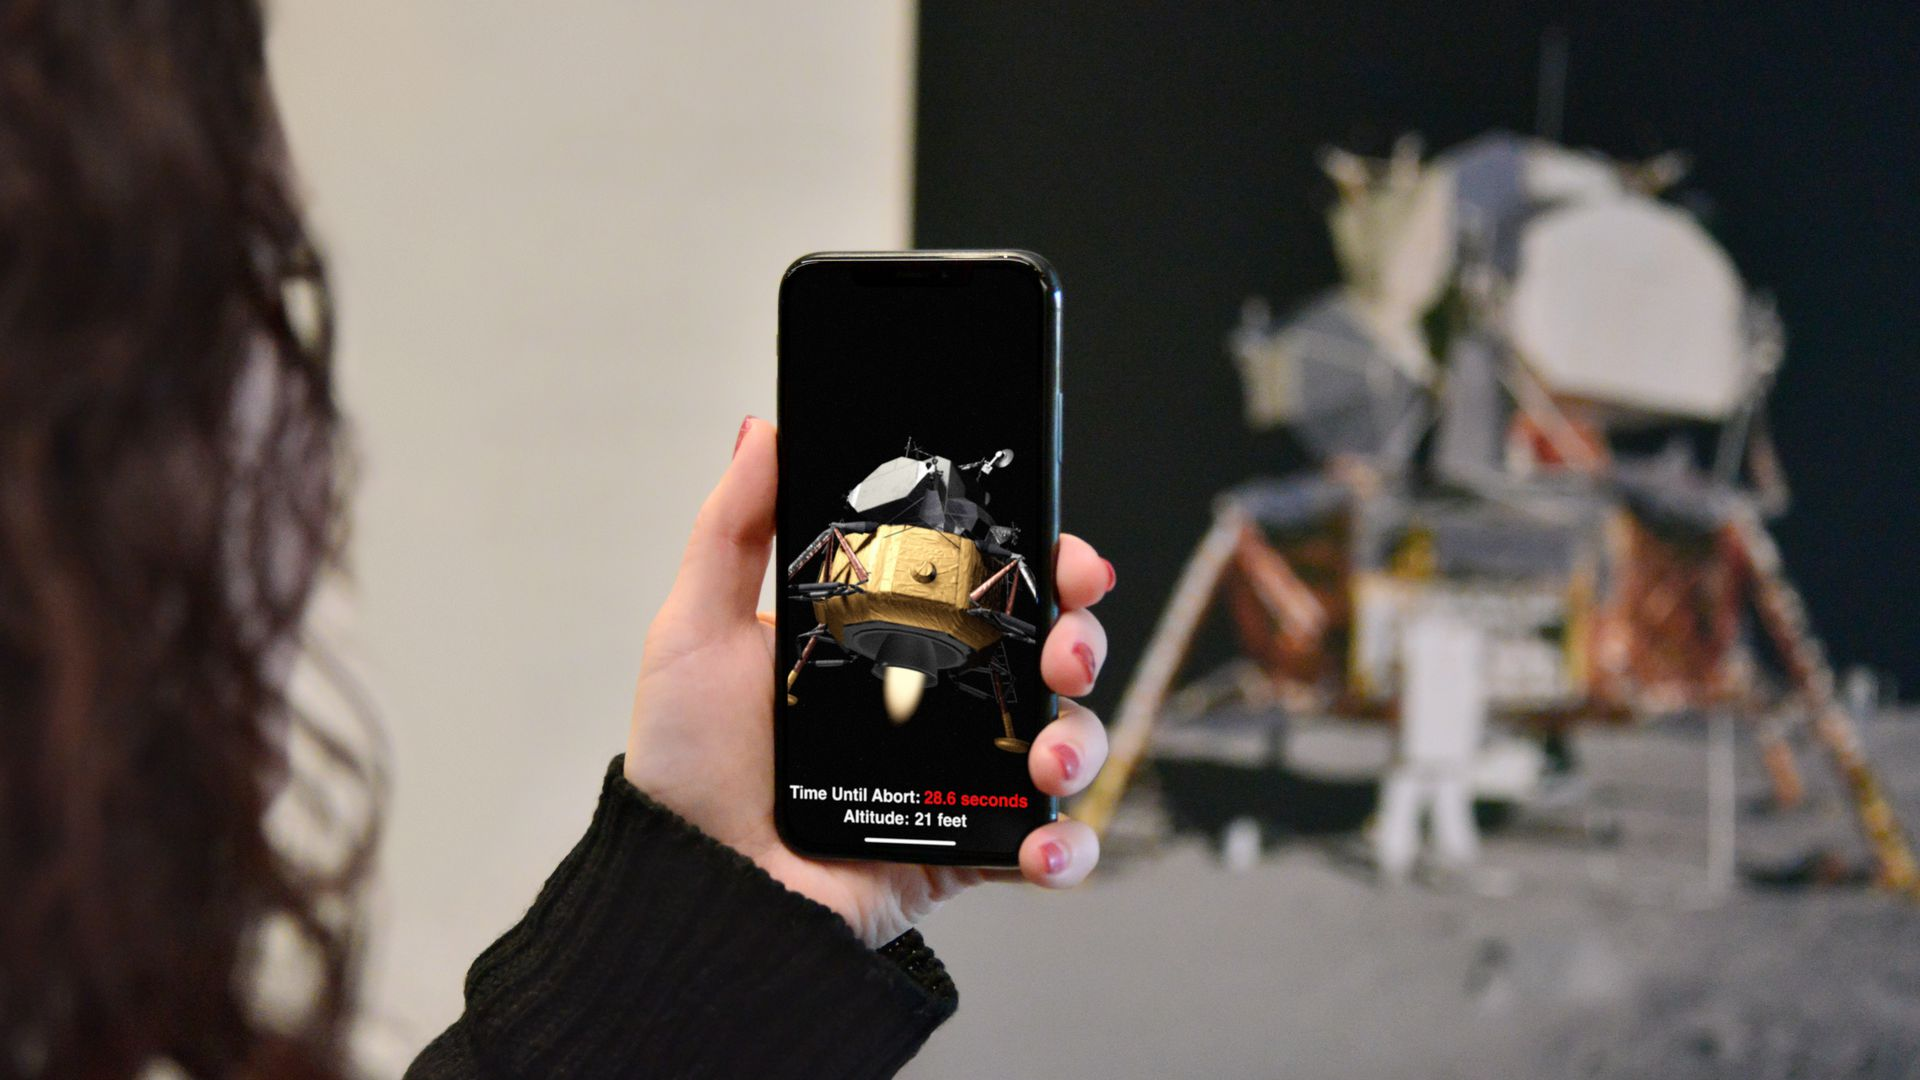 An update to Apple's ARKit can turn posters and other signs into interactive AR experiences.